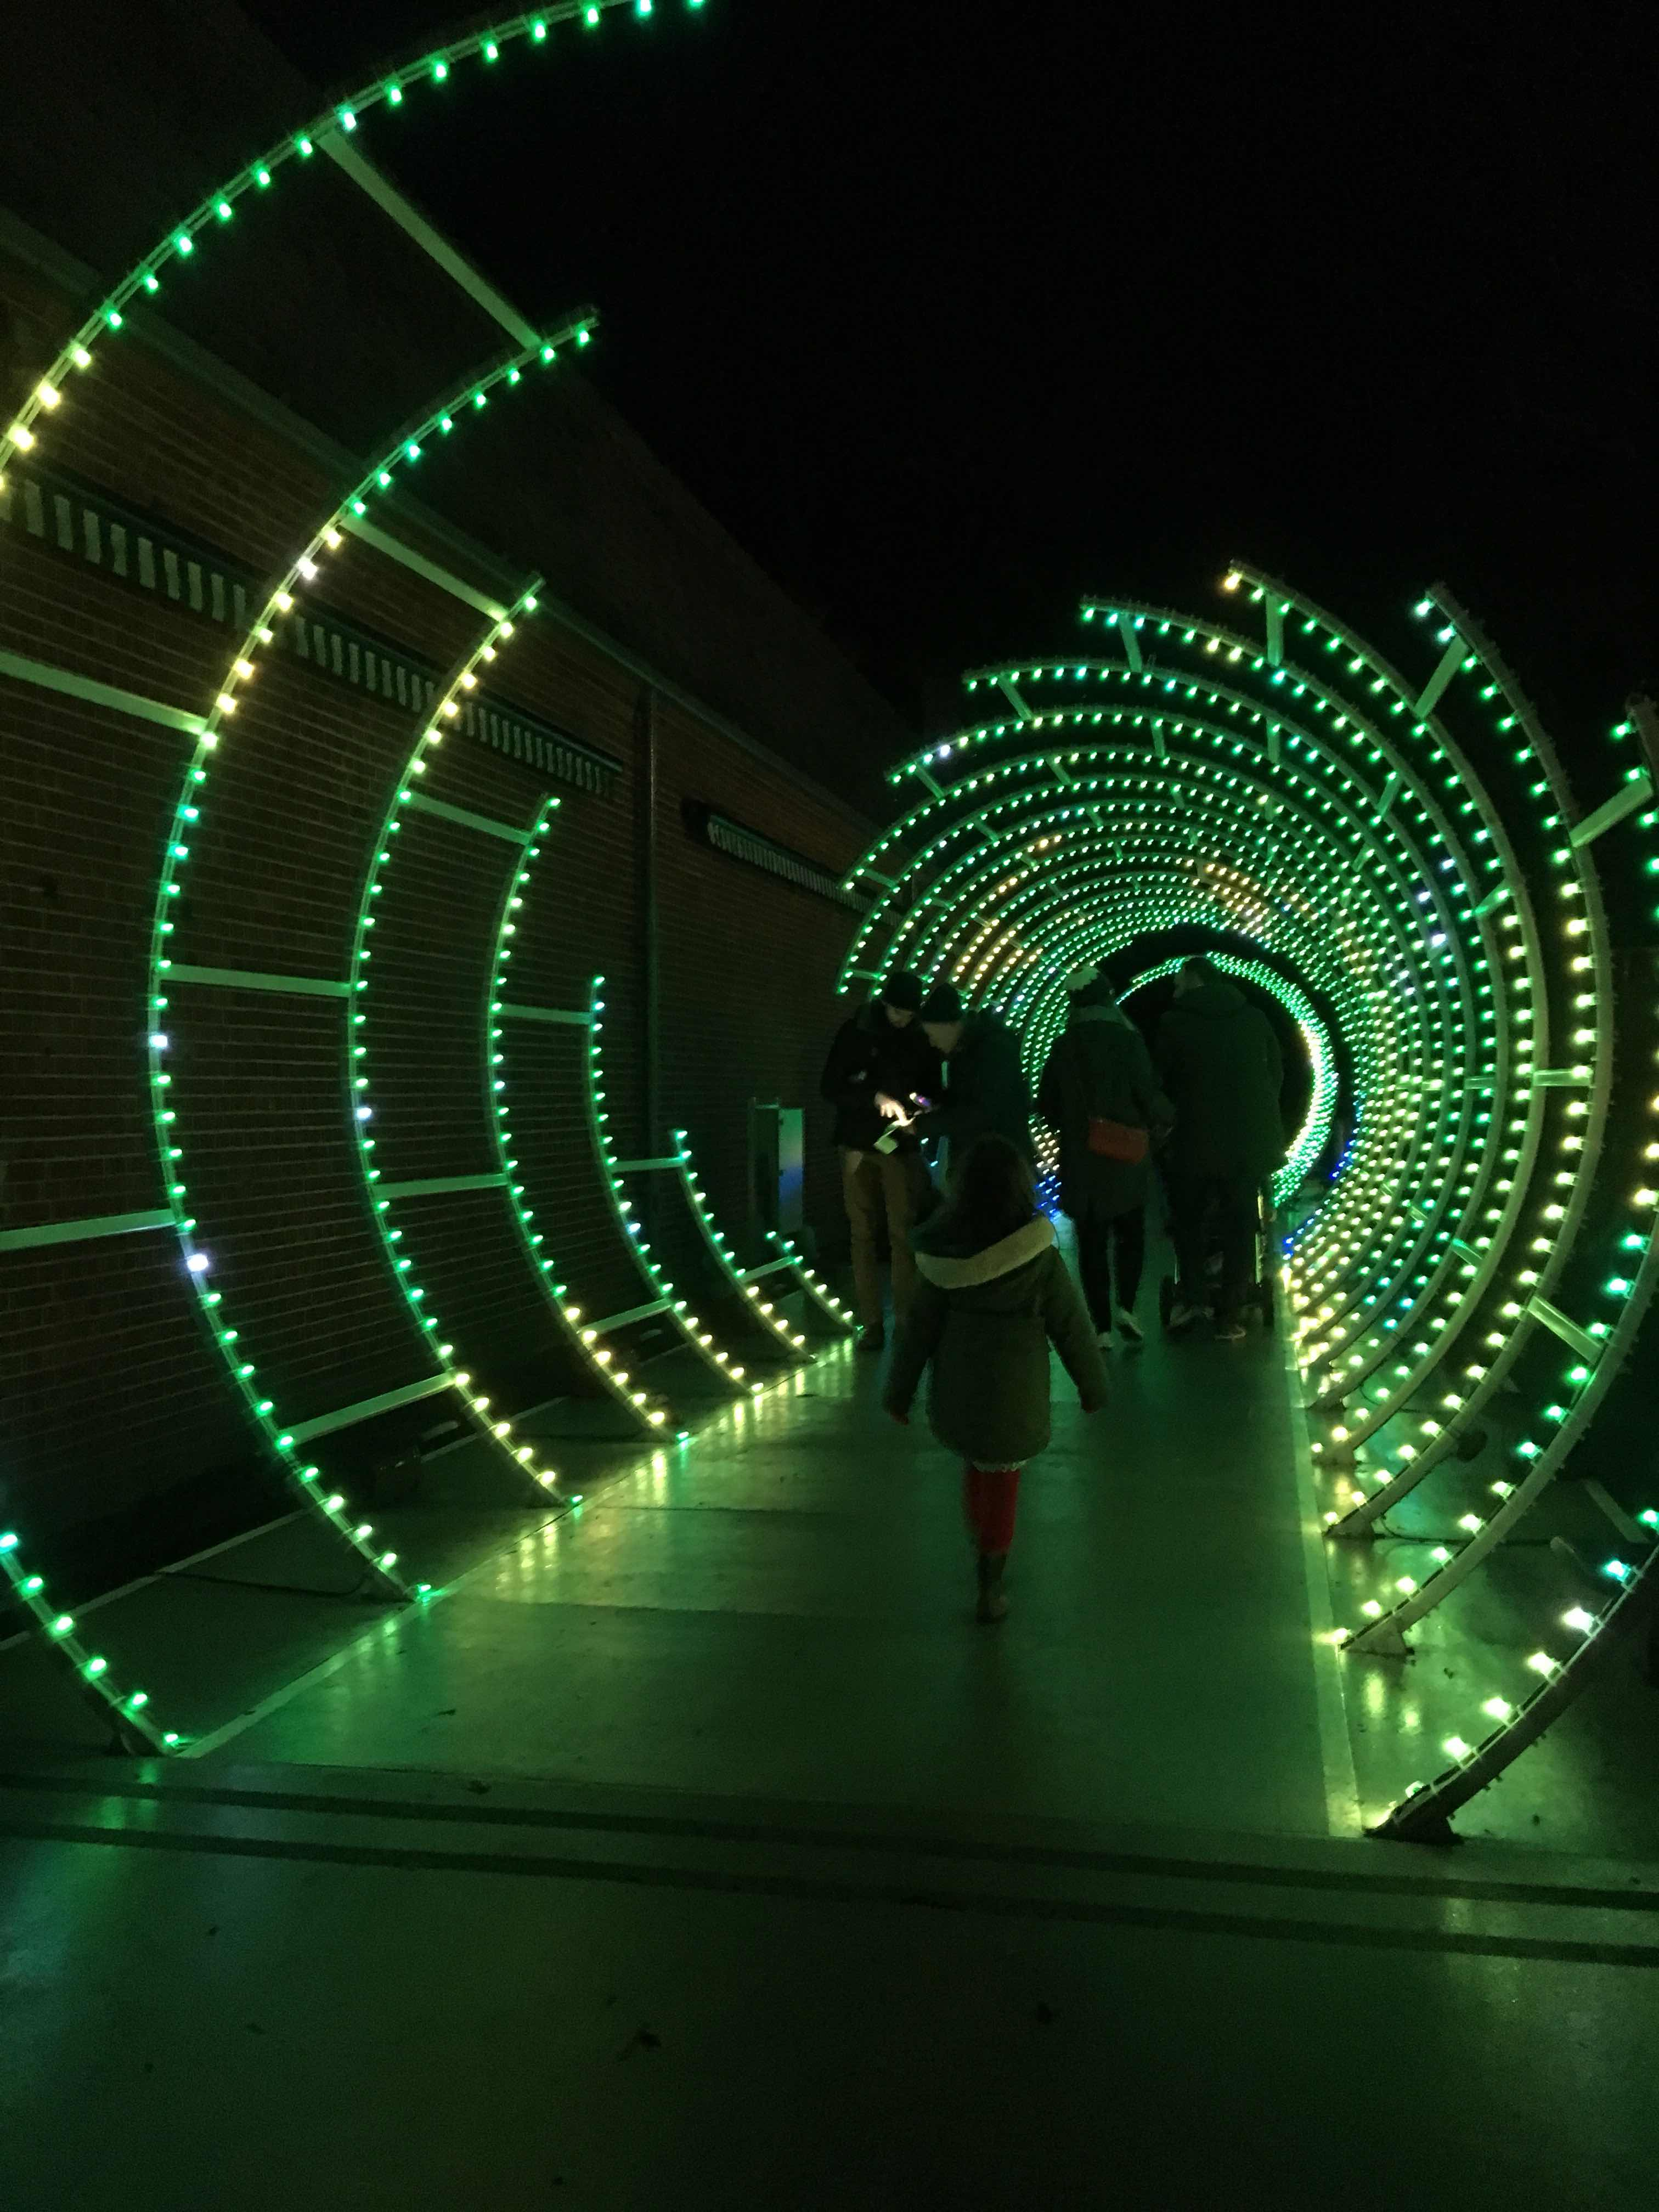 Tunnel of light at Waddesdon Manor